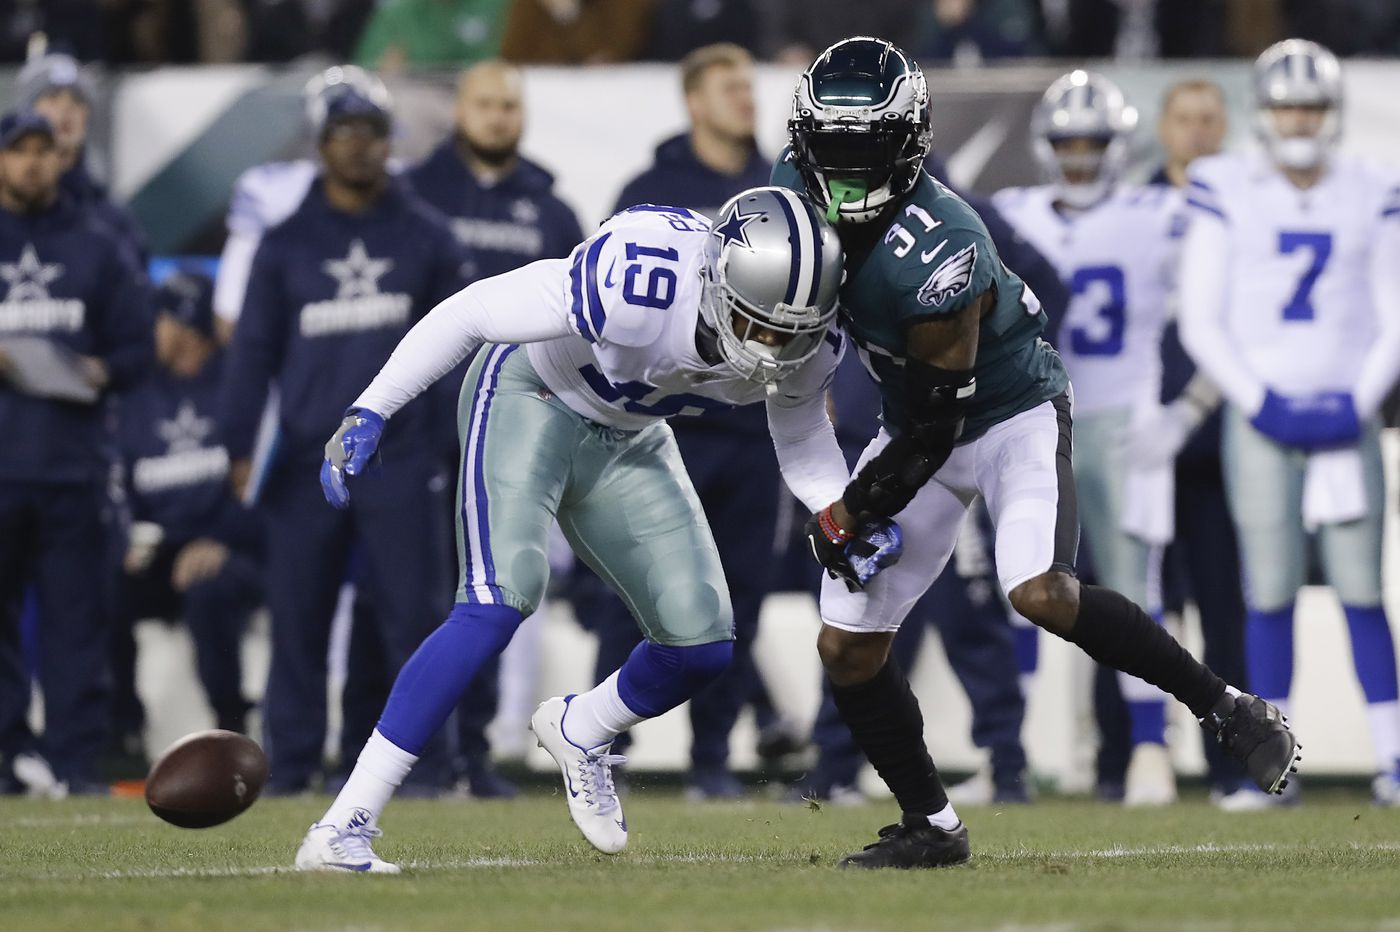 Joe Banner: Root hard for 49ers on Sunday night if Eagles beat Giants